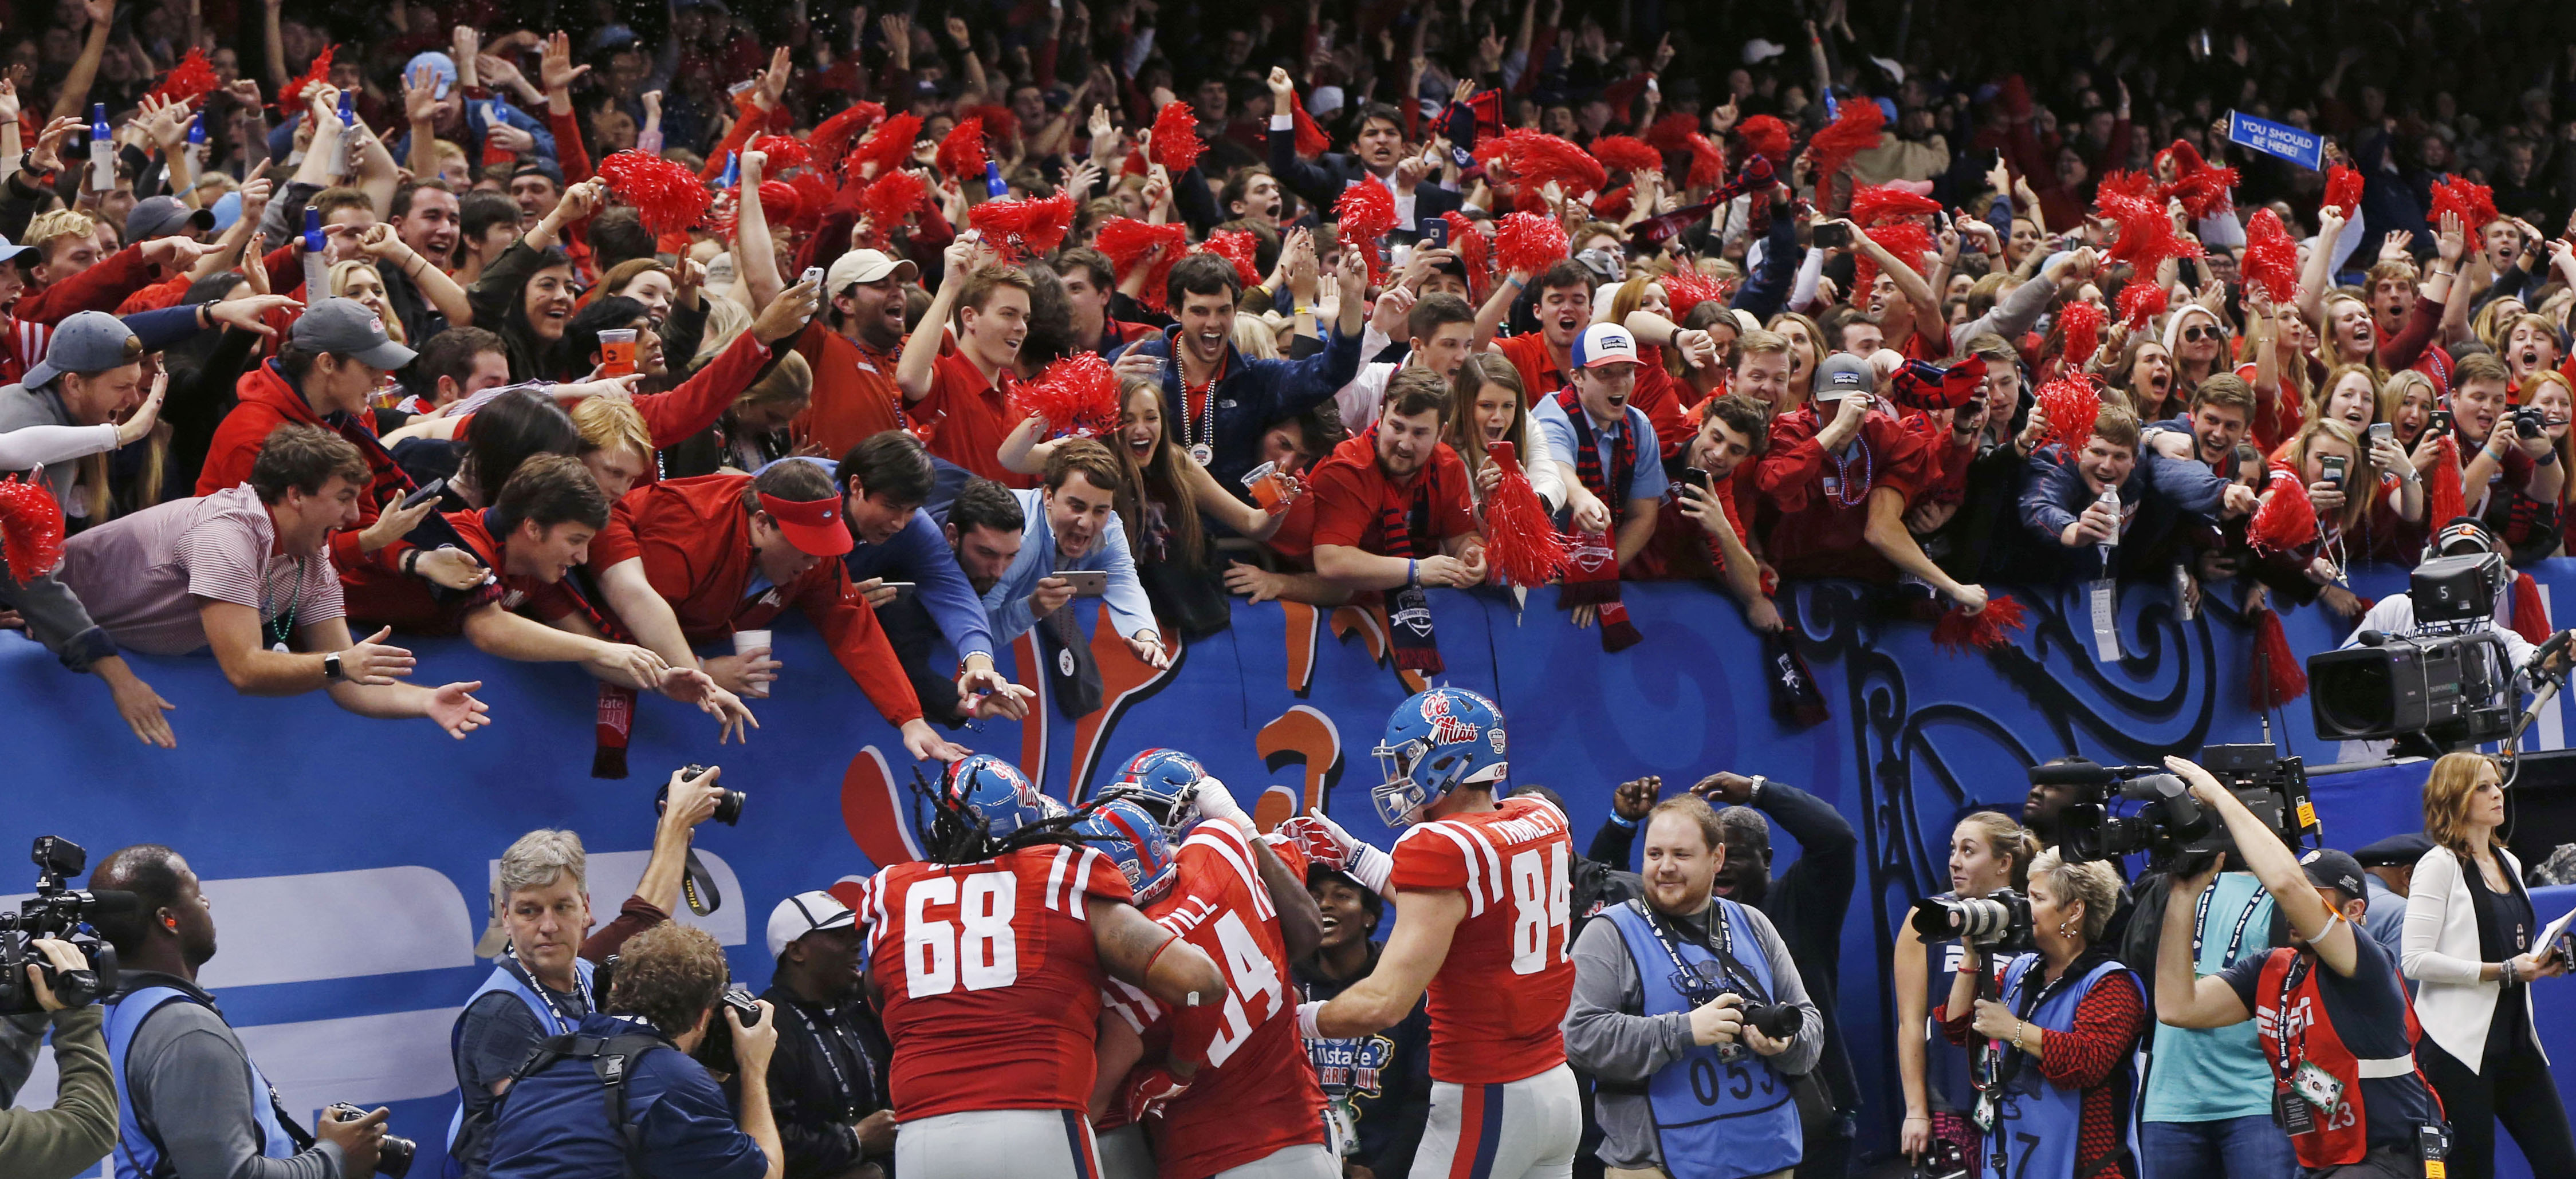 Mississippi players and fans celebrate after offensive lineman Laremy Tunsil (78) carried for a touchdown in the first half of the Sugar Bowl college football game against Oklahoma State in New Orleans, Friday, Jan. 1, 2016. (AP Photo/Bill Feig)